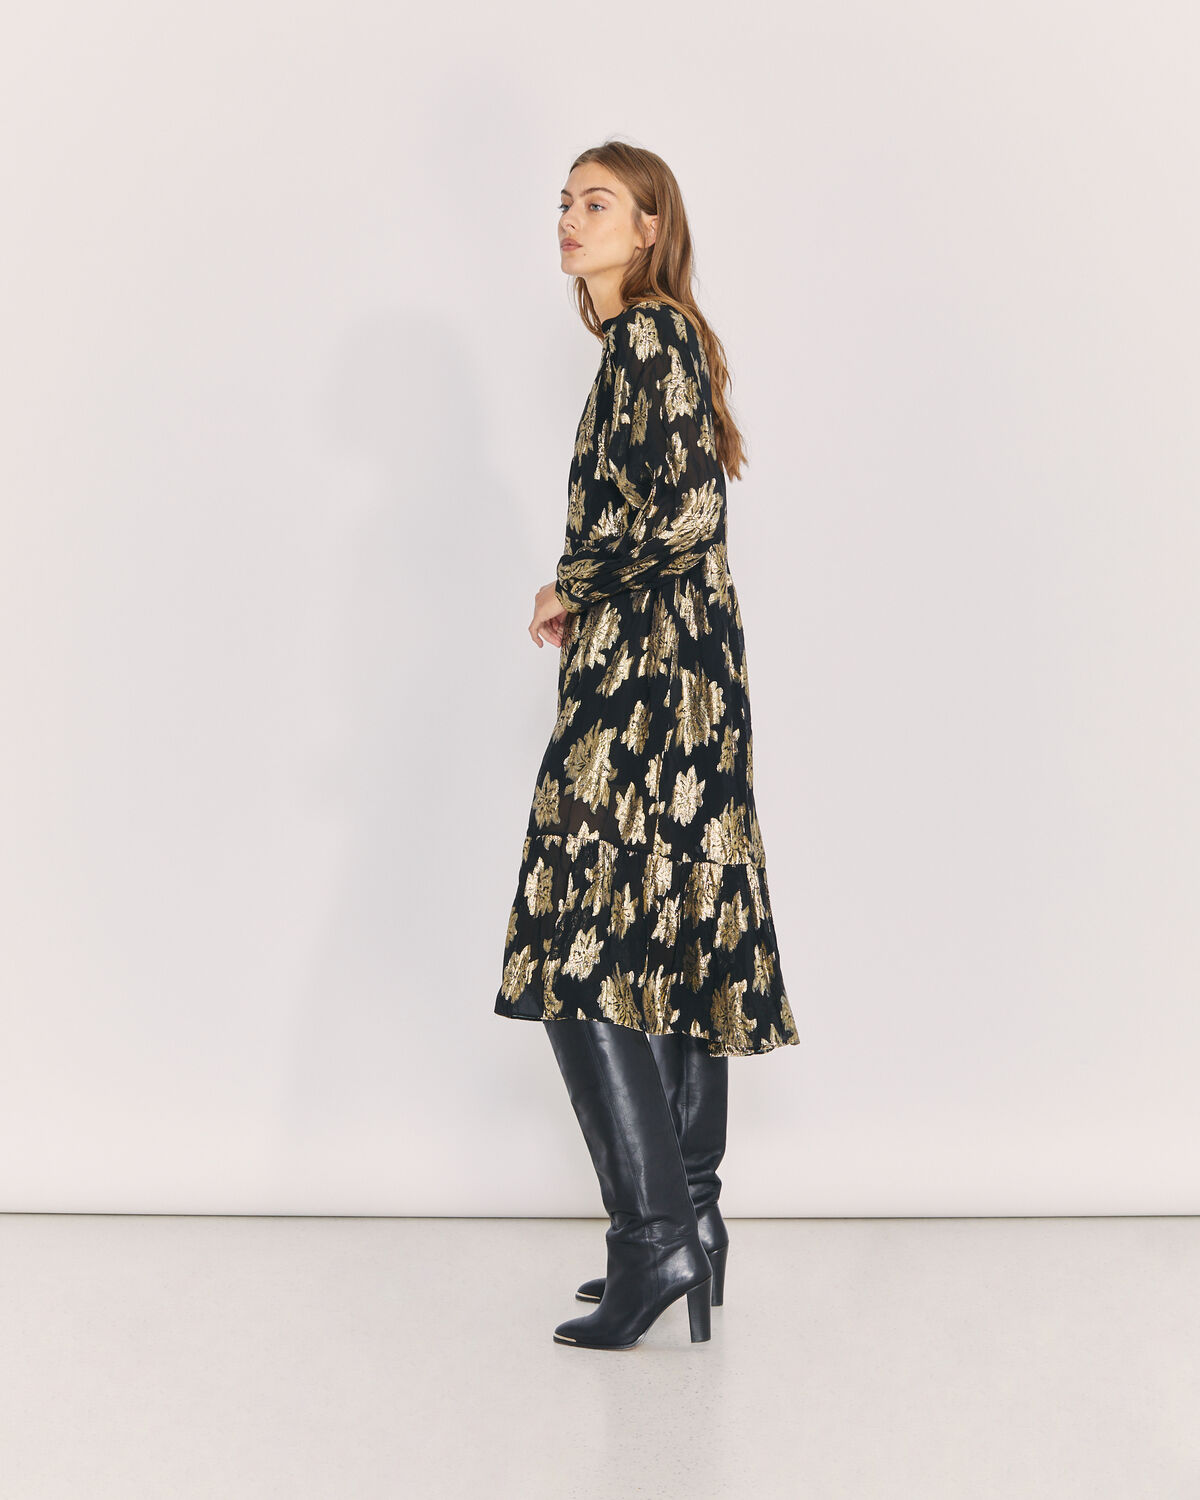 IRO - KATTE OVERSIZED METALLIC FLORAL MIDI DRESS BLACK/GOLD